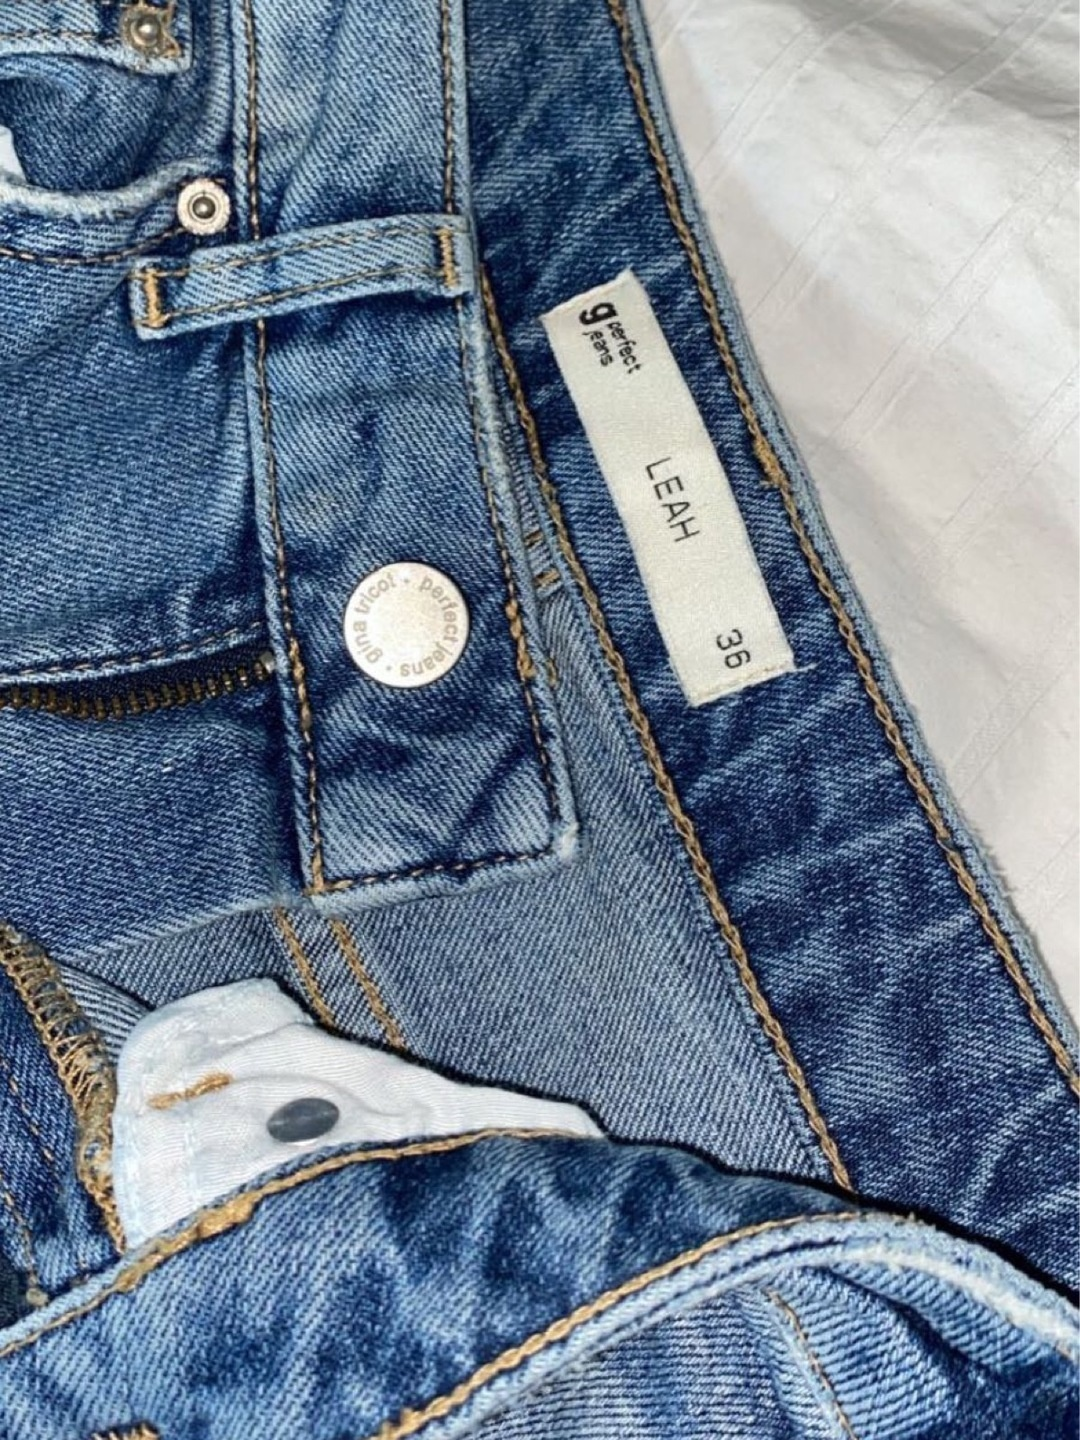 Women's trousers & jeans - GINA TRICOT photo 4